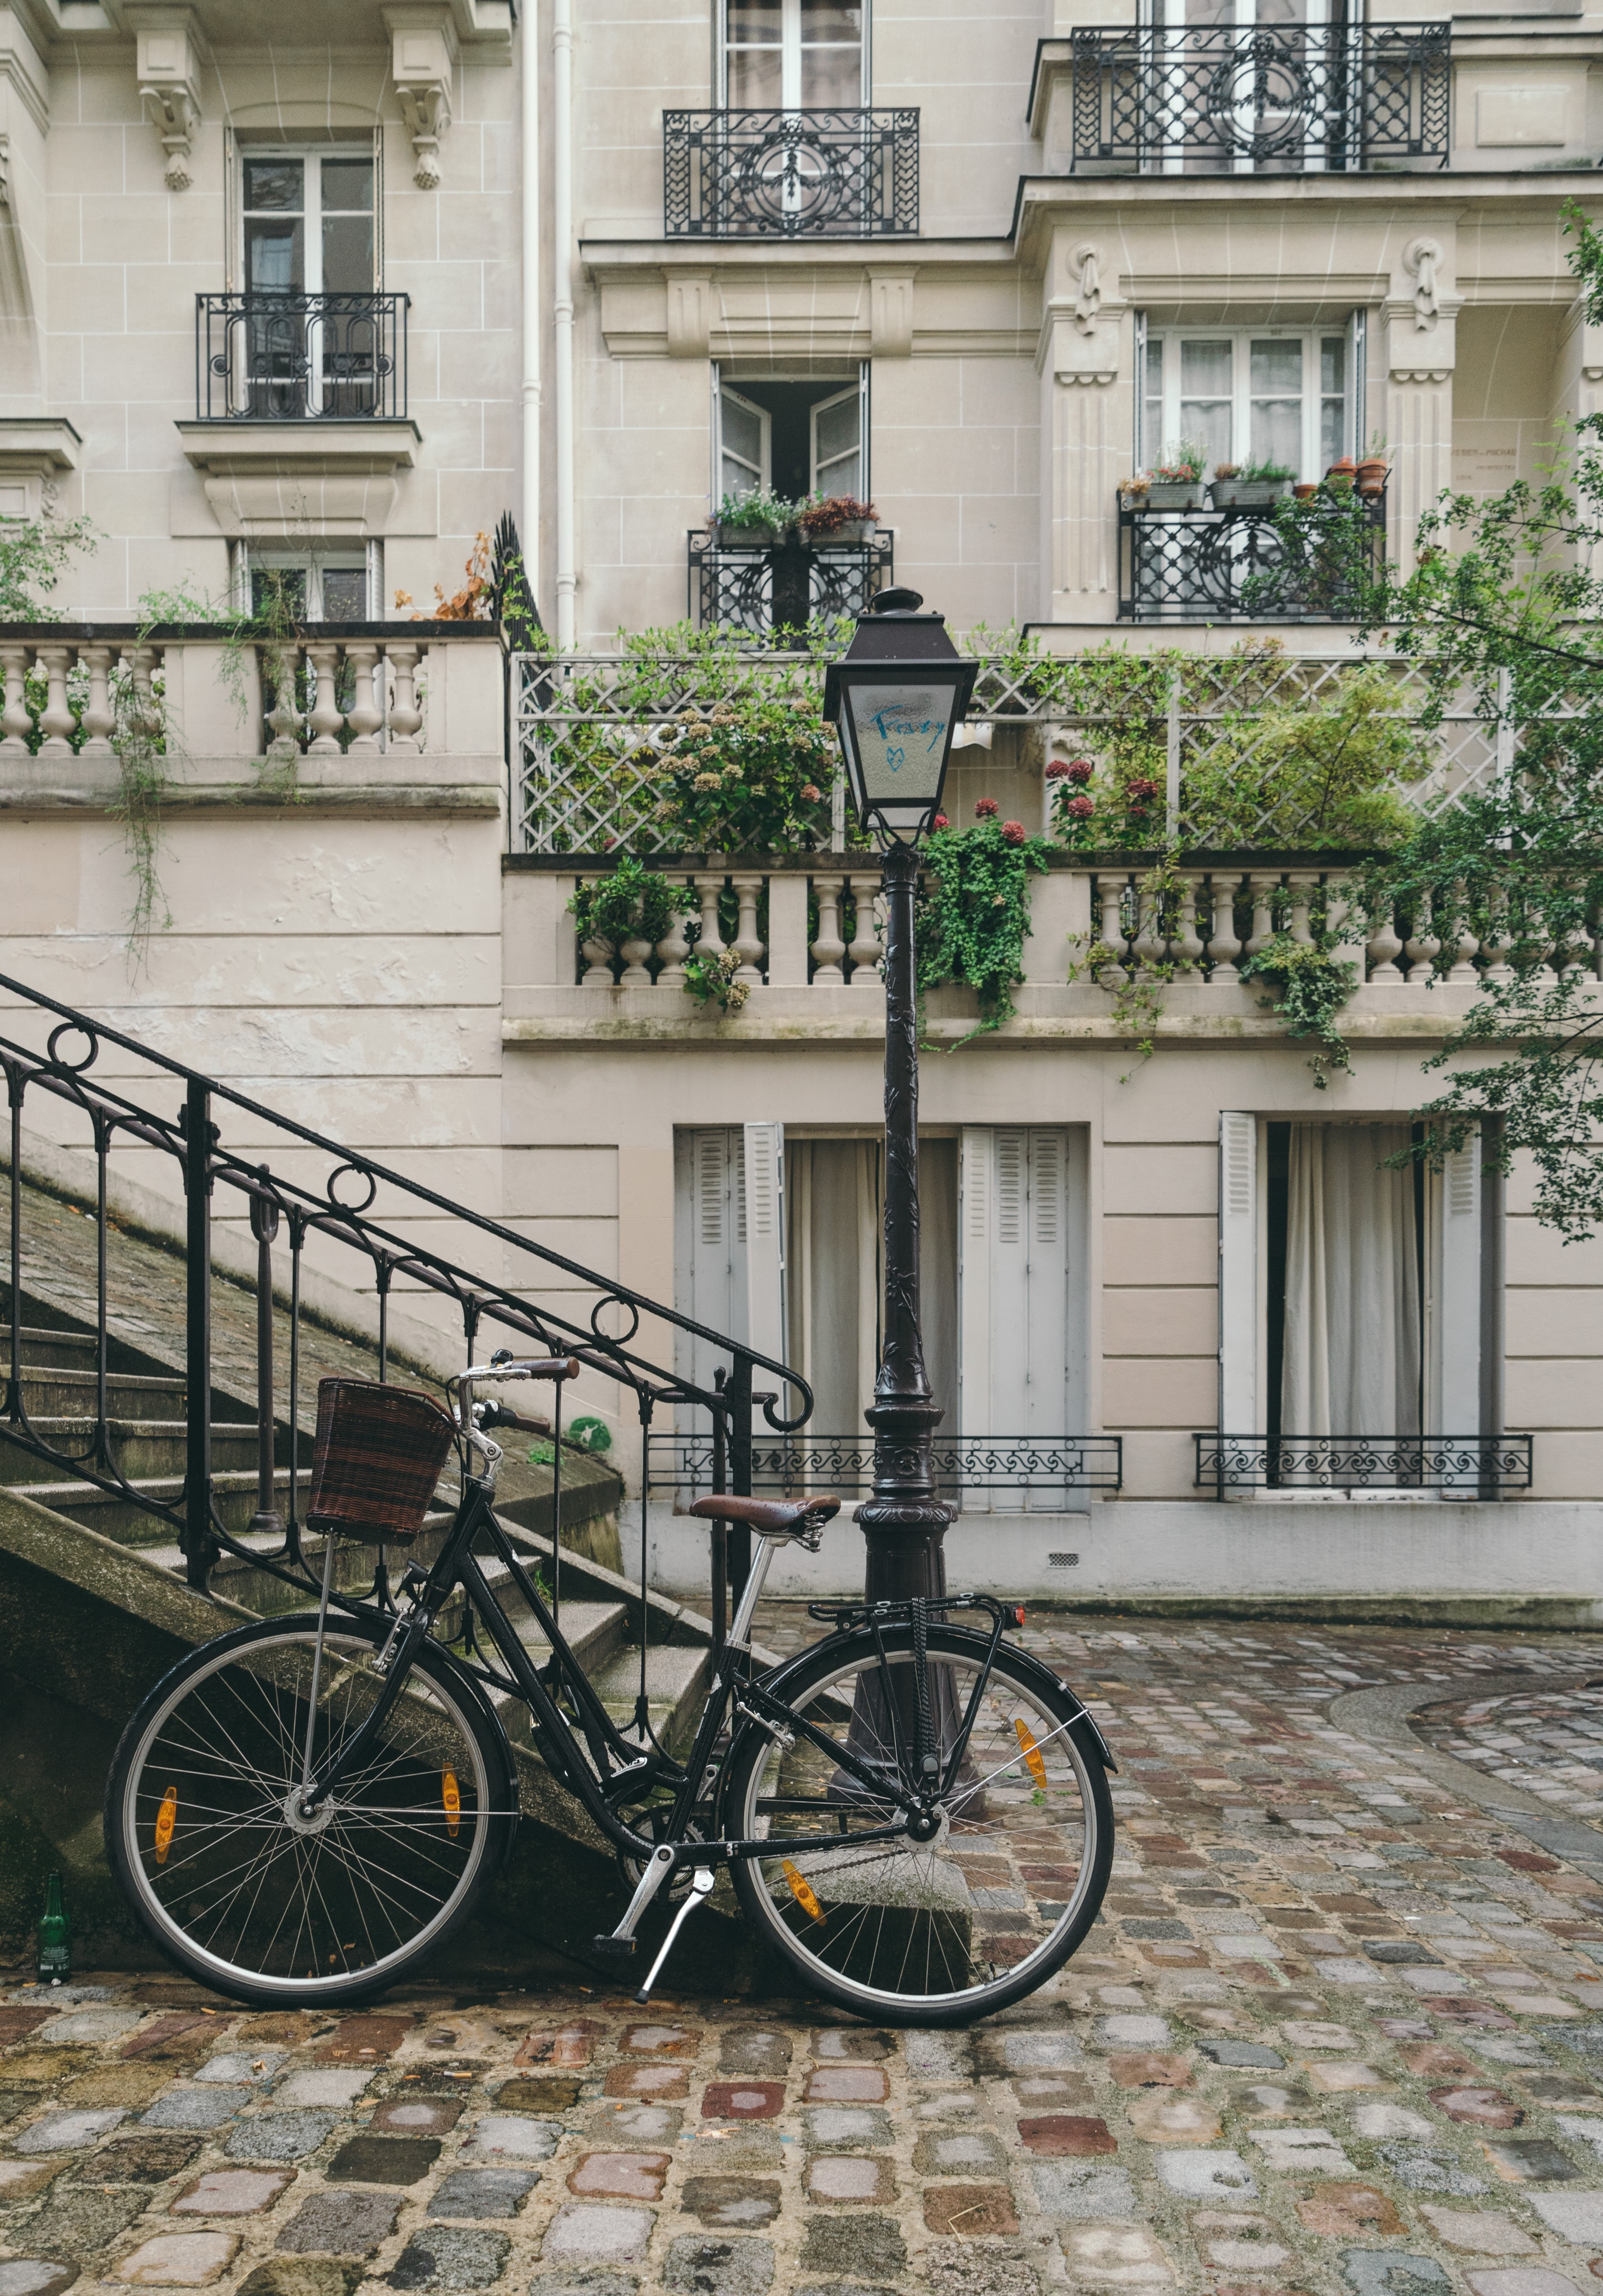 A bicycle resting against a flight of stairs and a lamppost with French buildings in the background.